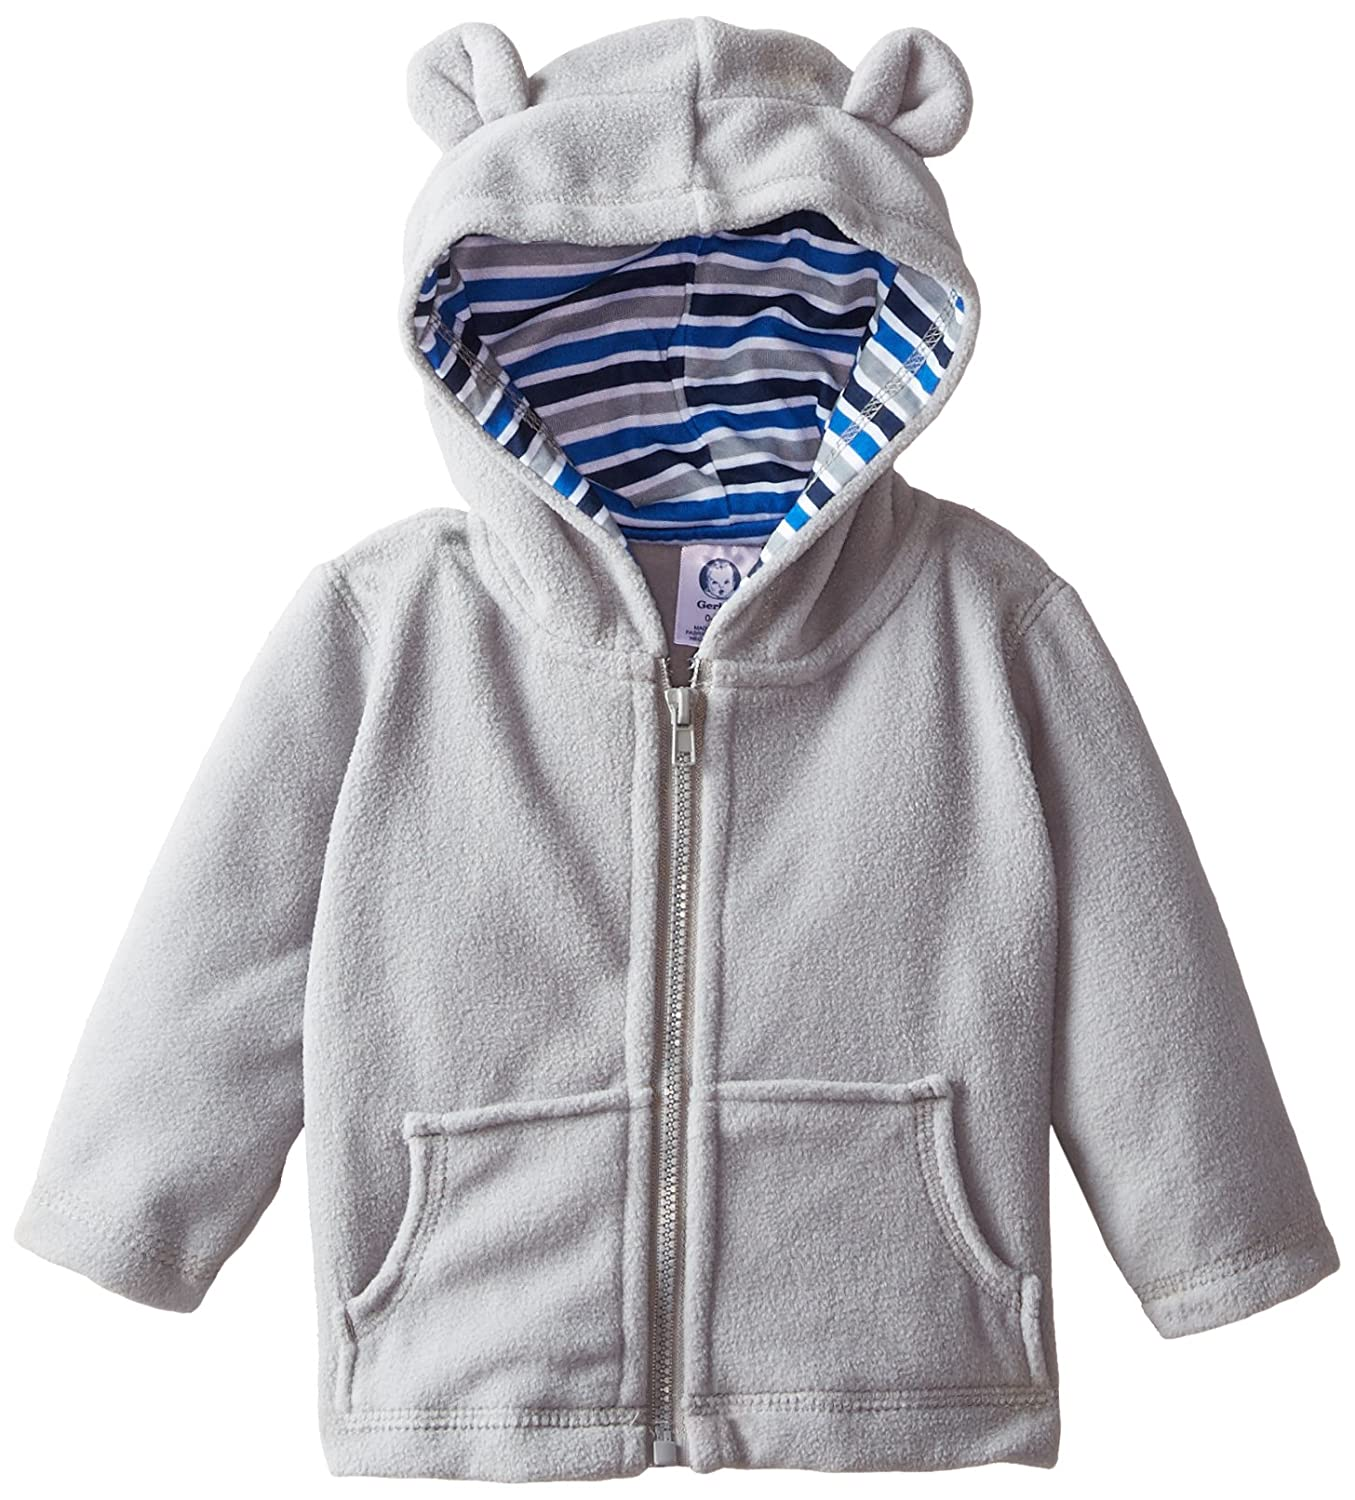 Gerber Baby Boys' Hooded Micro Fleece Jacket Gerber Children' s Apparel